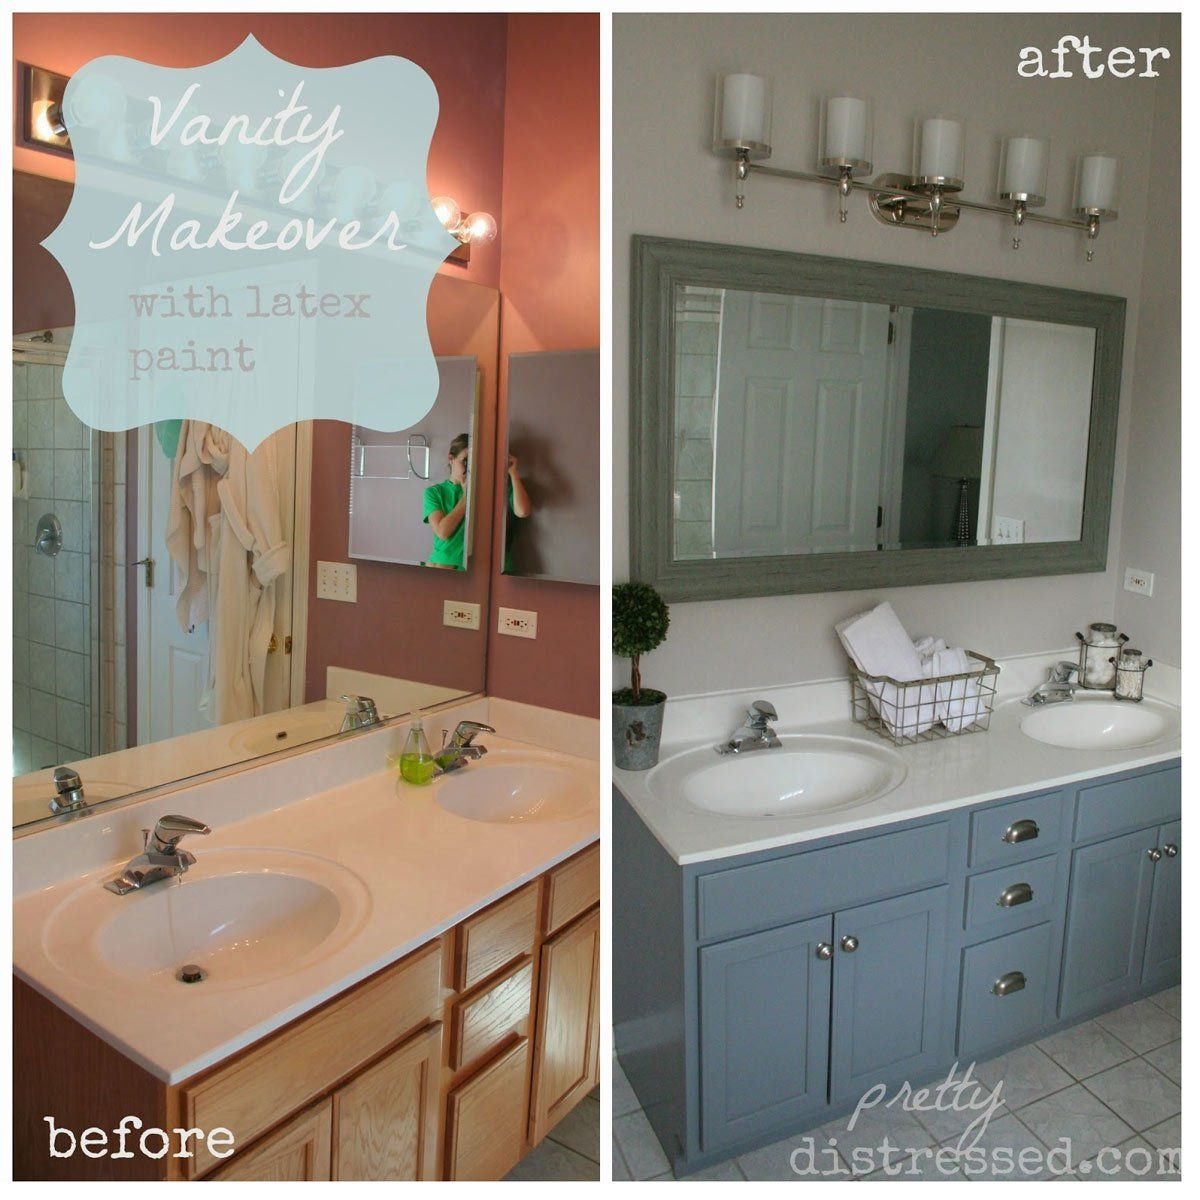 12 Astonishing Diy Bathroom Vanity Makeovers Painted Vanity Bathroom Bathroom Cabinet Makeover Vanity Makeover